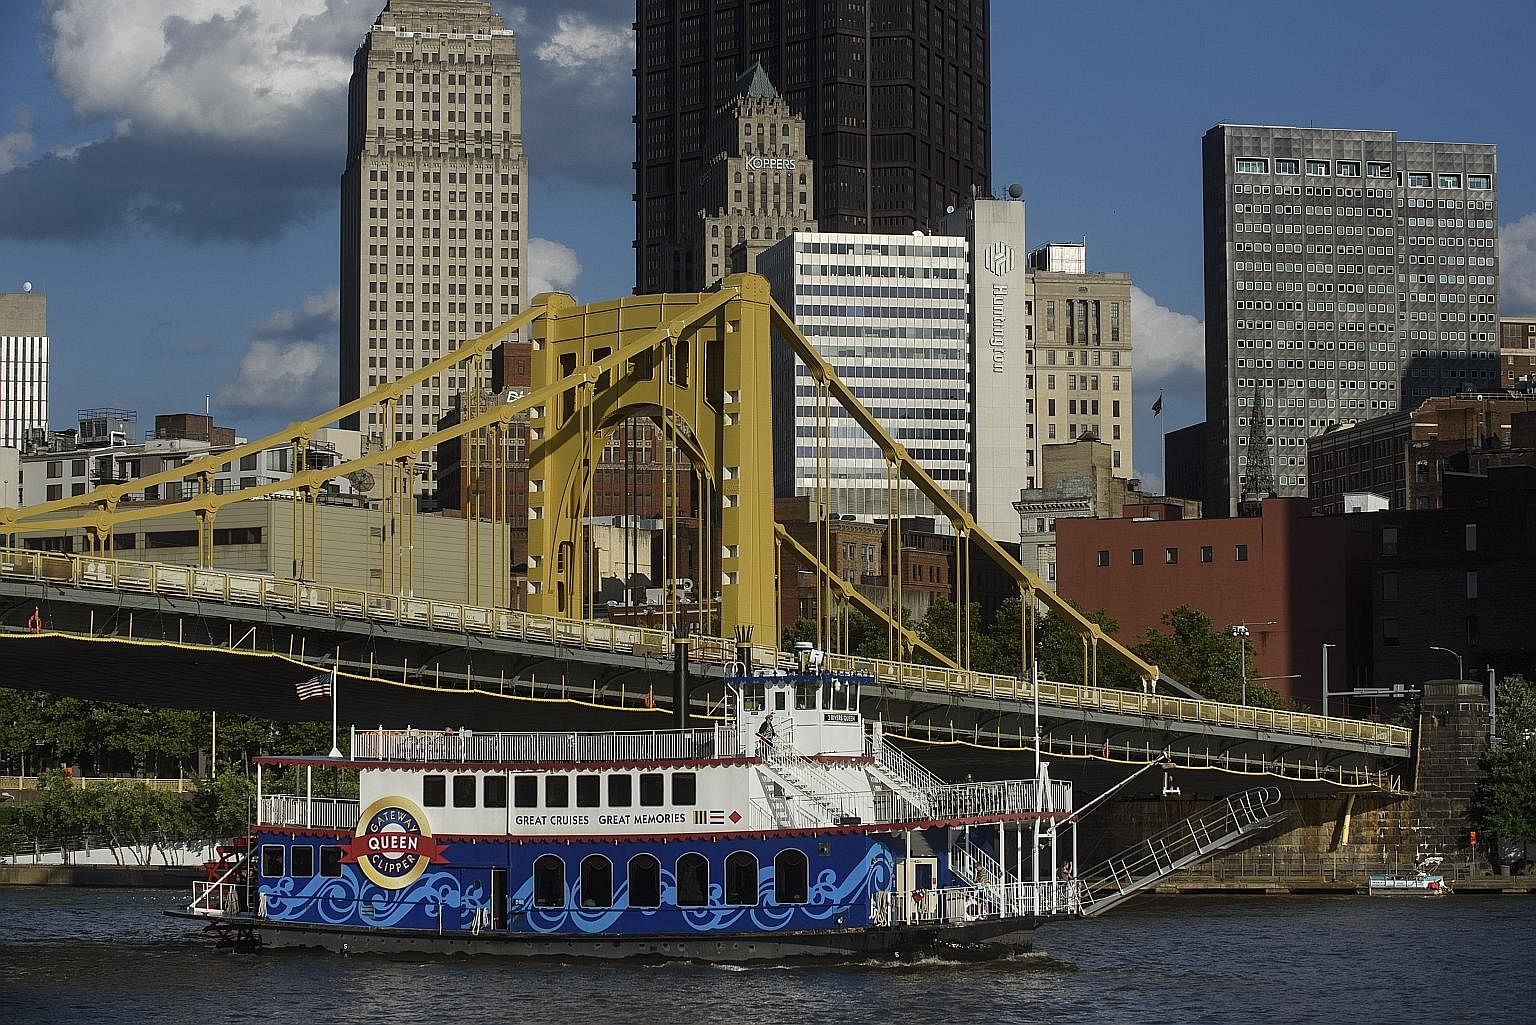 A riverboat plying the Allegheny River in Pittsburgh. Gone are the filthy smokestacks that once dominated the city's skyline. Today, a mixture of shiny new towers and historic old buildings rises above the river, while hip cafes and restaurants have sprun